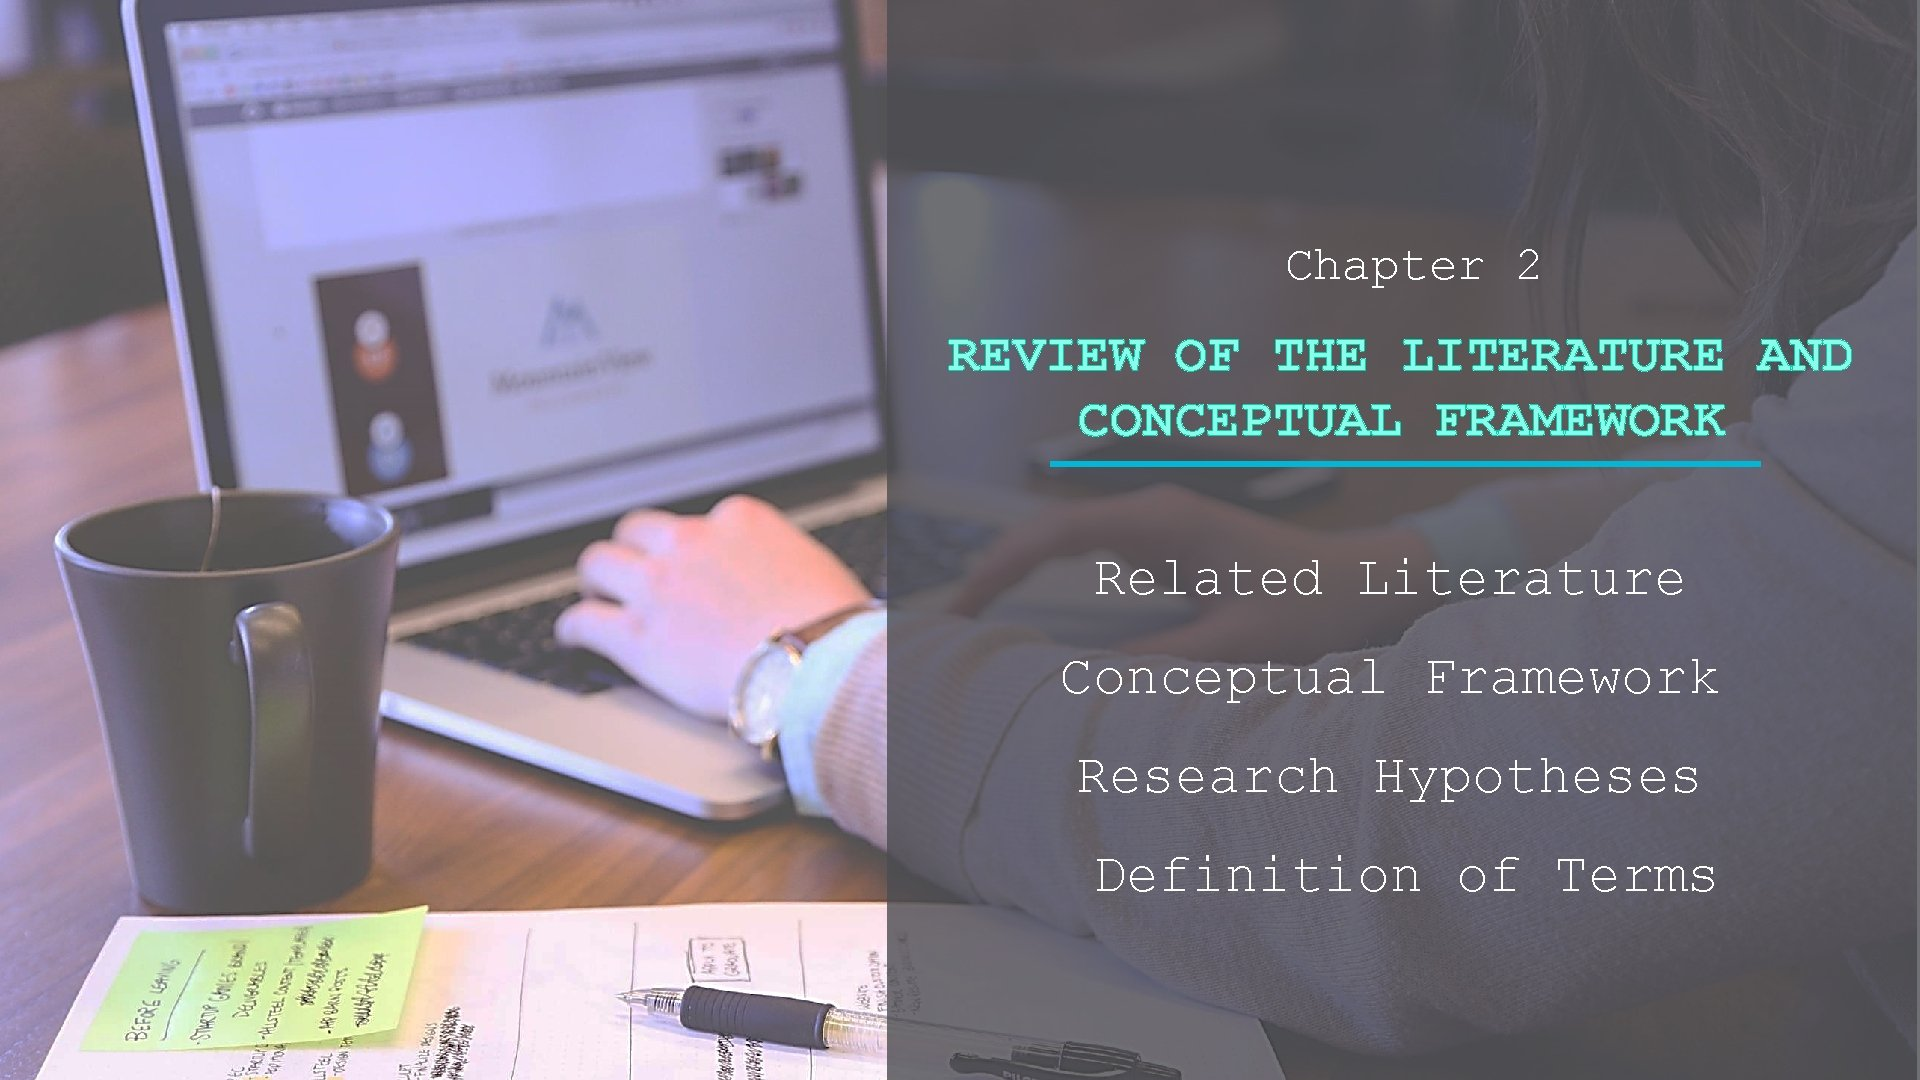 Chapter 2 REVIEW OF THE LITERATURE AND CONCEPTUAL FRAMEWORK Related Literature Conceptual Framework Research